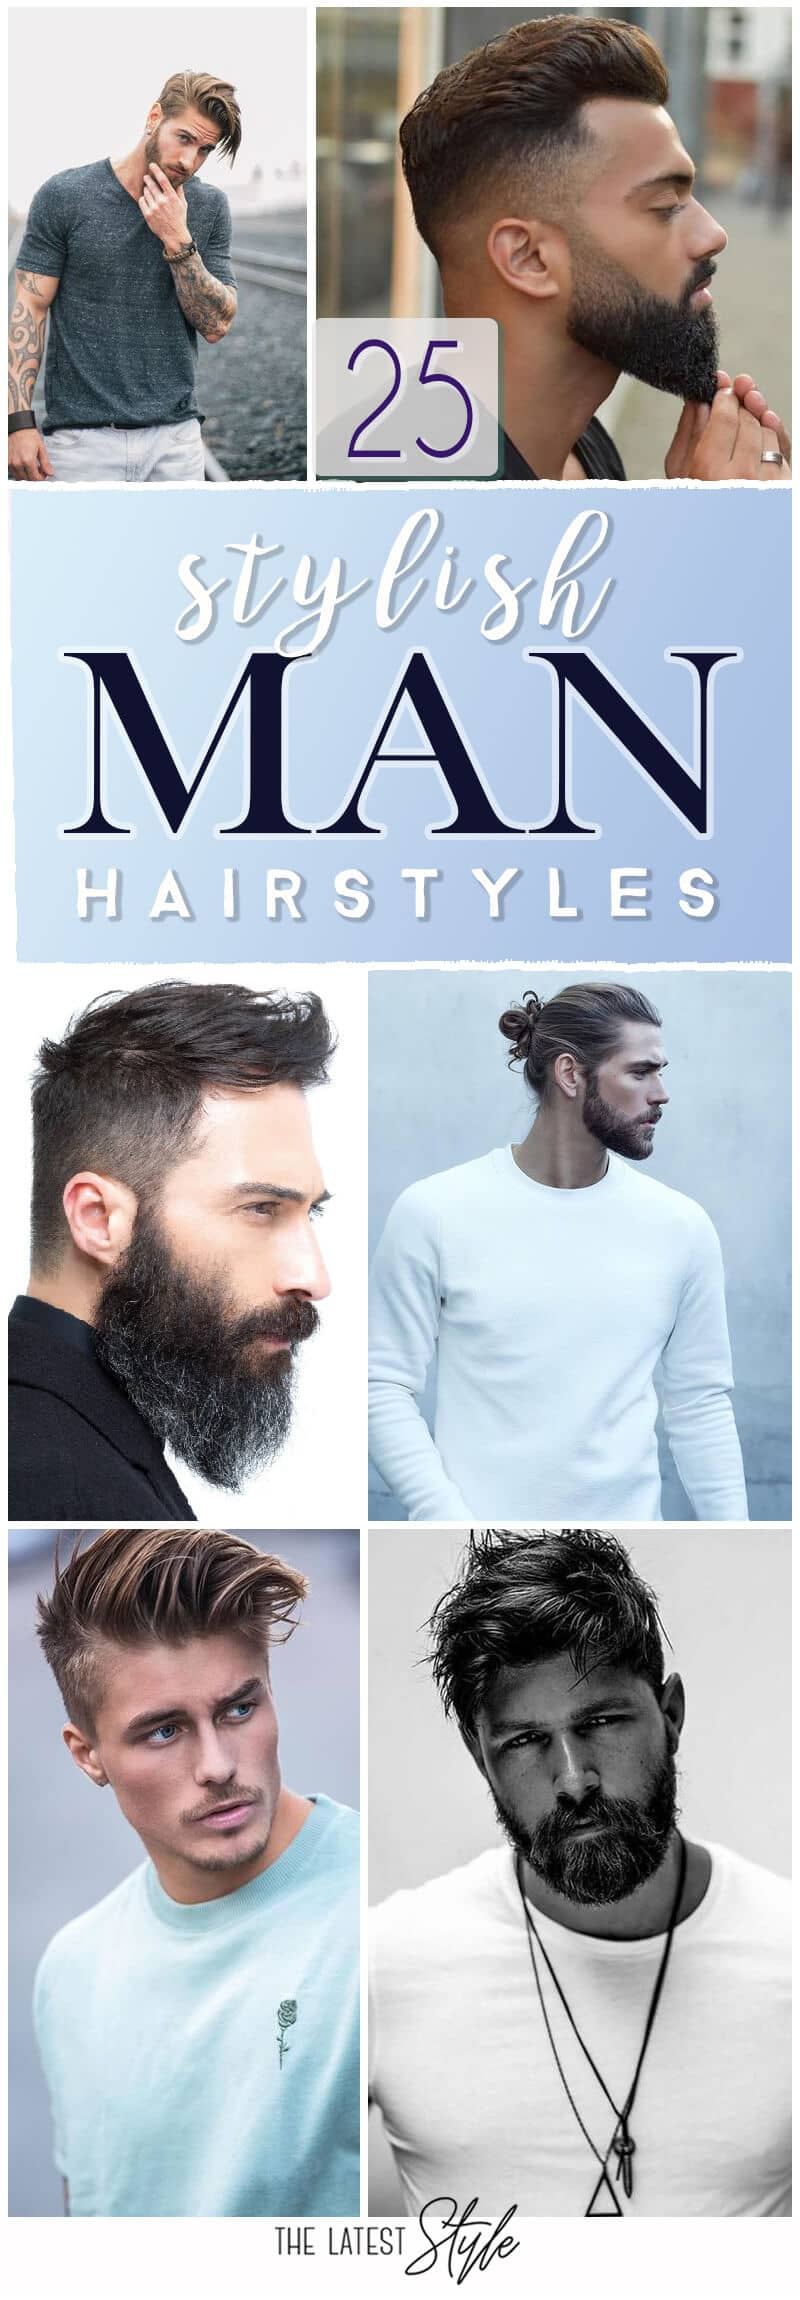 25 Stylish Man Hairstyle Ideas that You Must Try